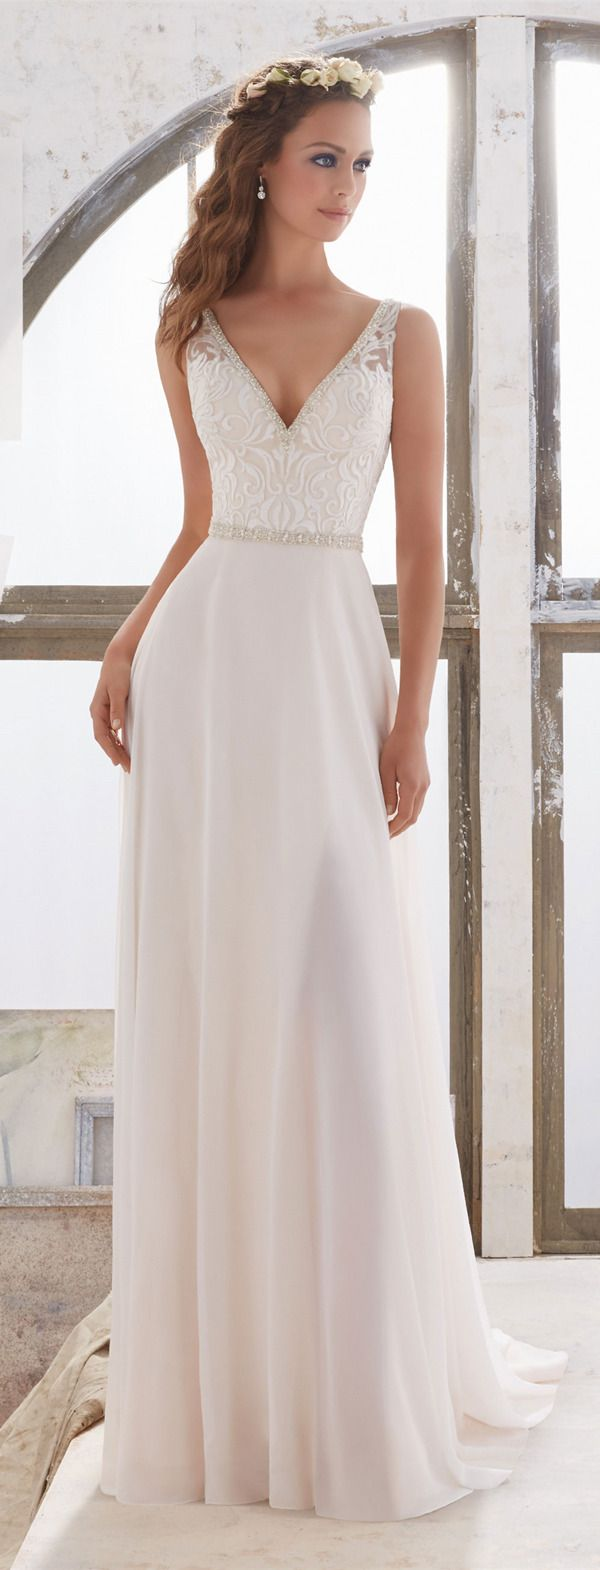 wedding dress simple classy wedding dresses Morilee Madeline Gardner Wedding Dresses Collection